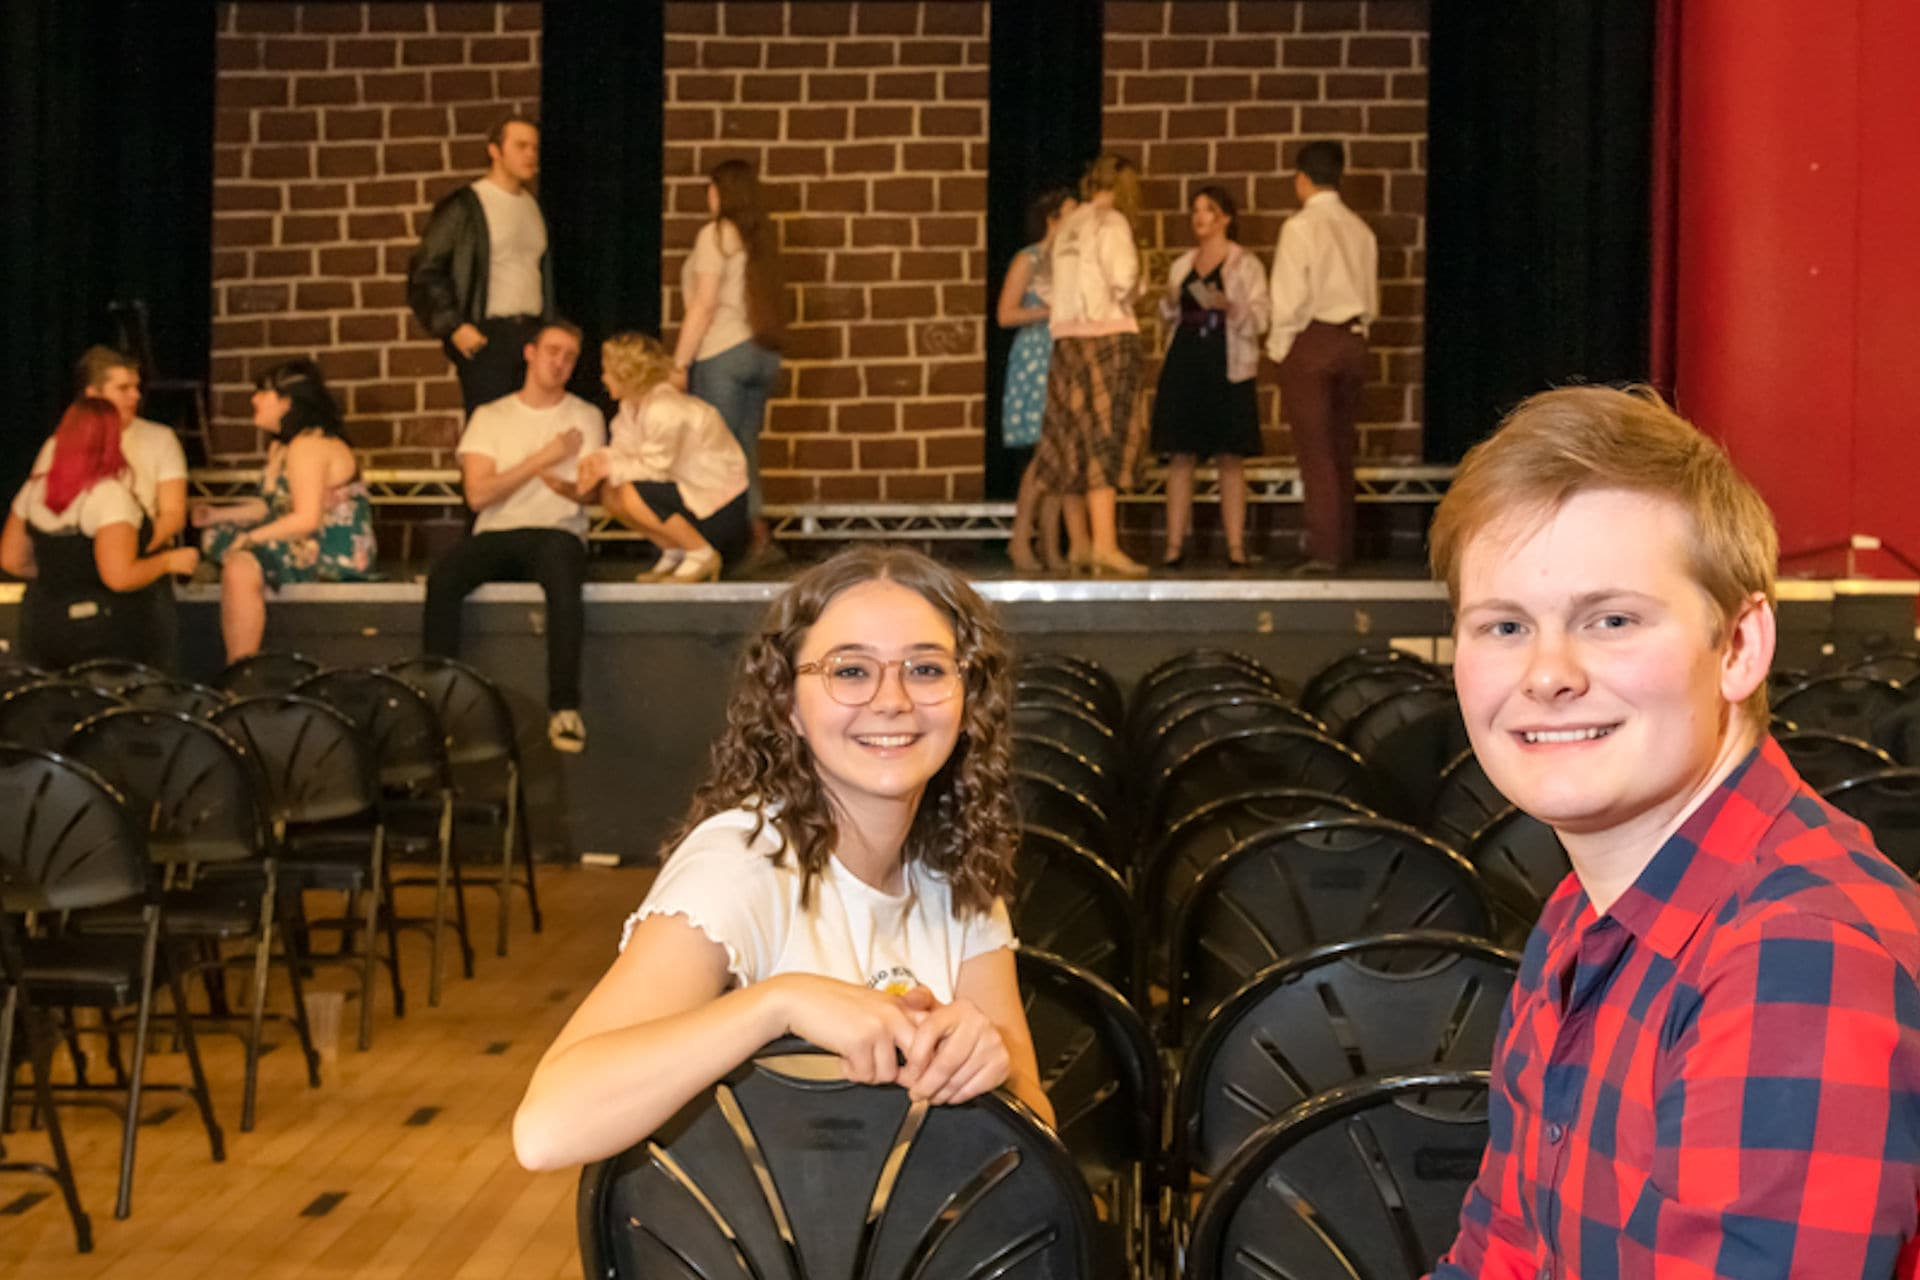 Students in theatre space smiling at camera with other students performing in background